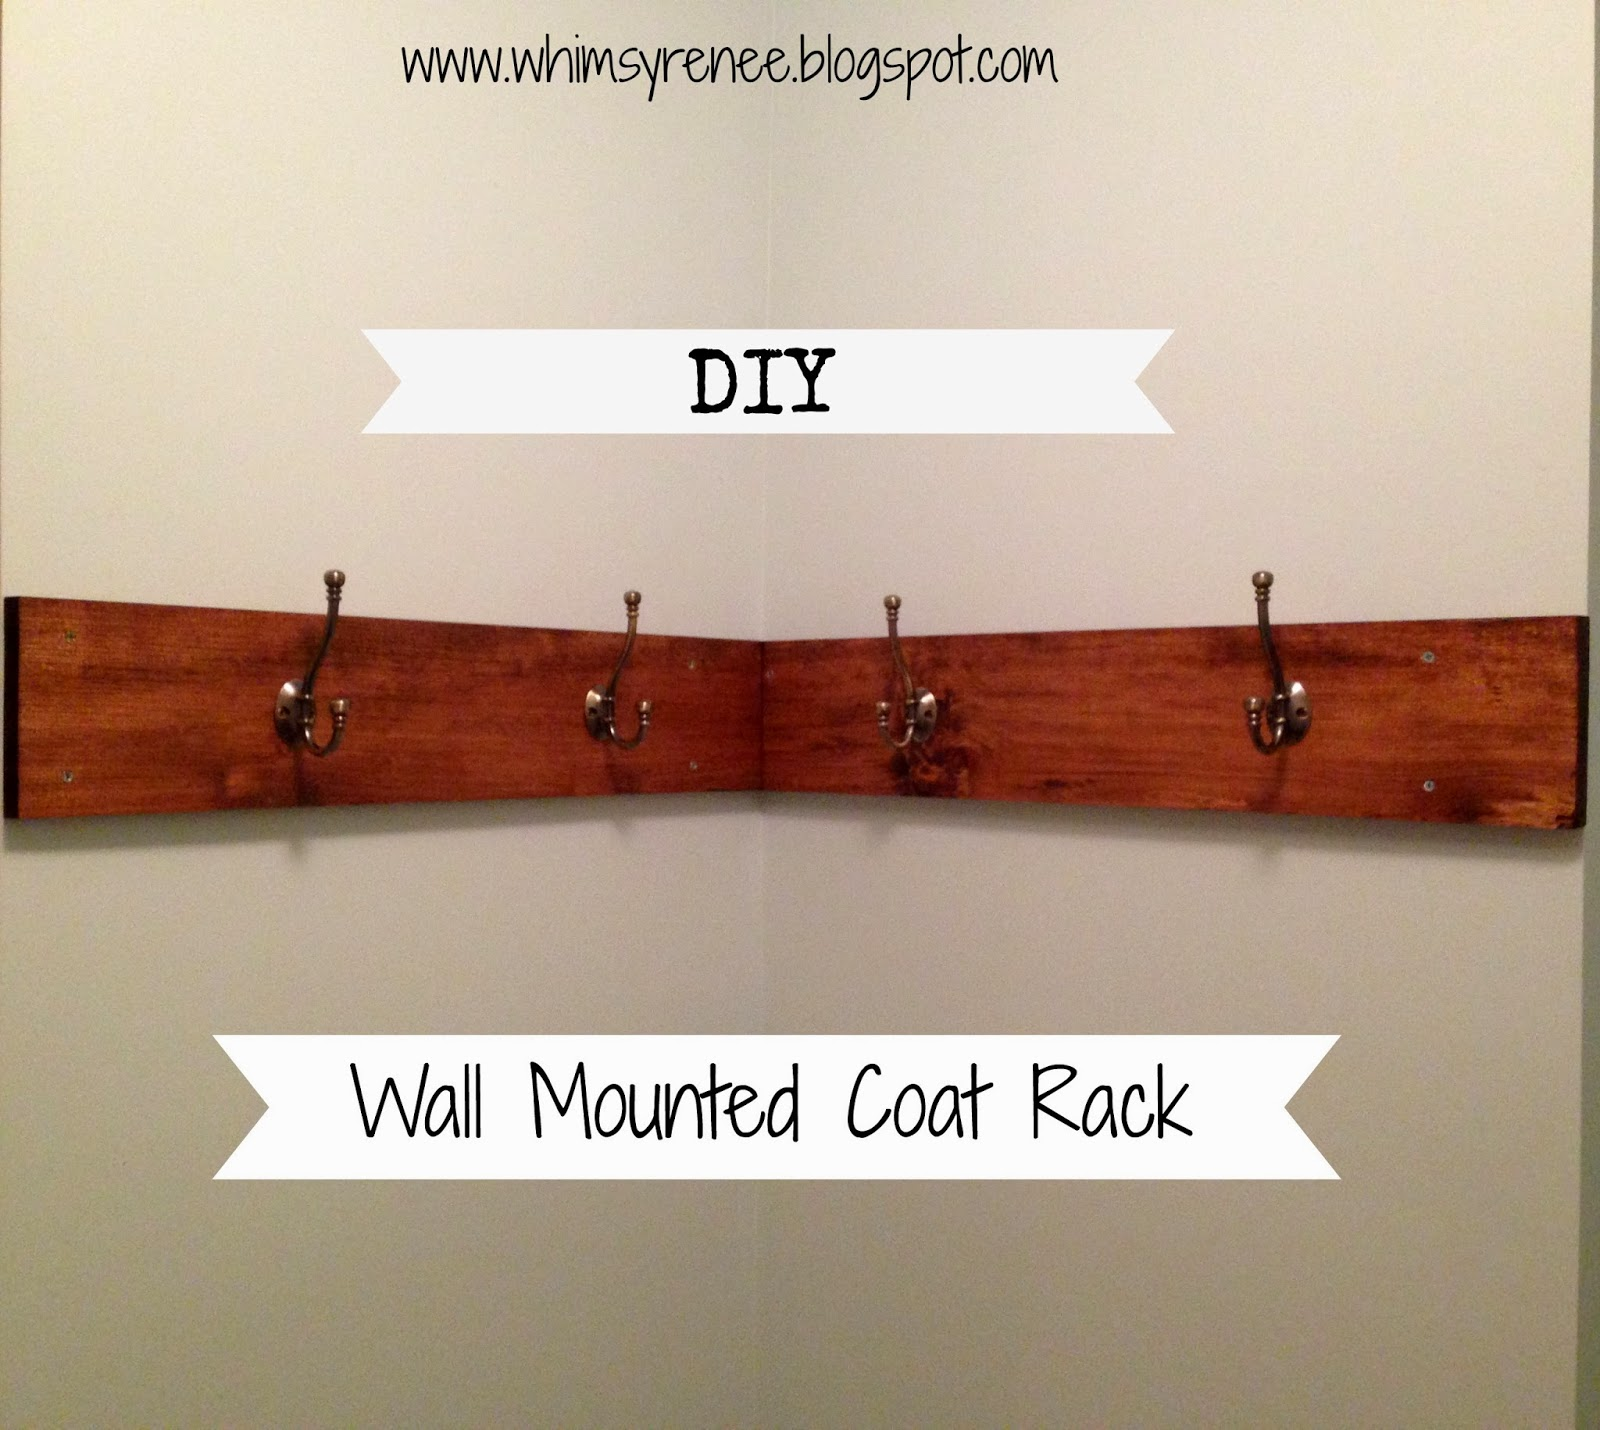 Whimsy Renee DIY WallMounted Coat Rack